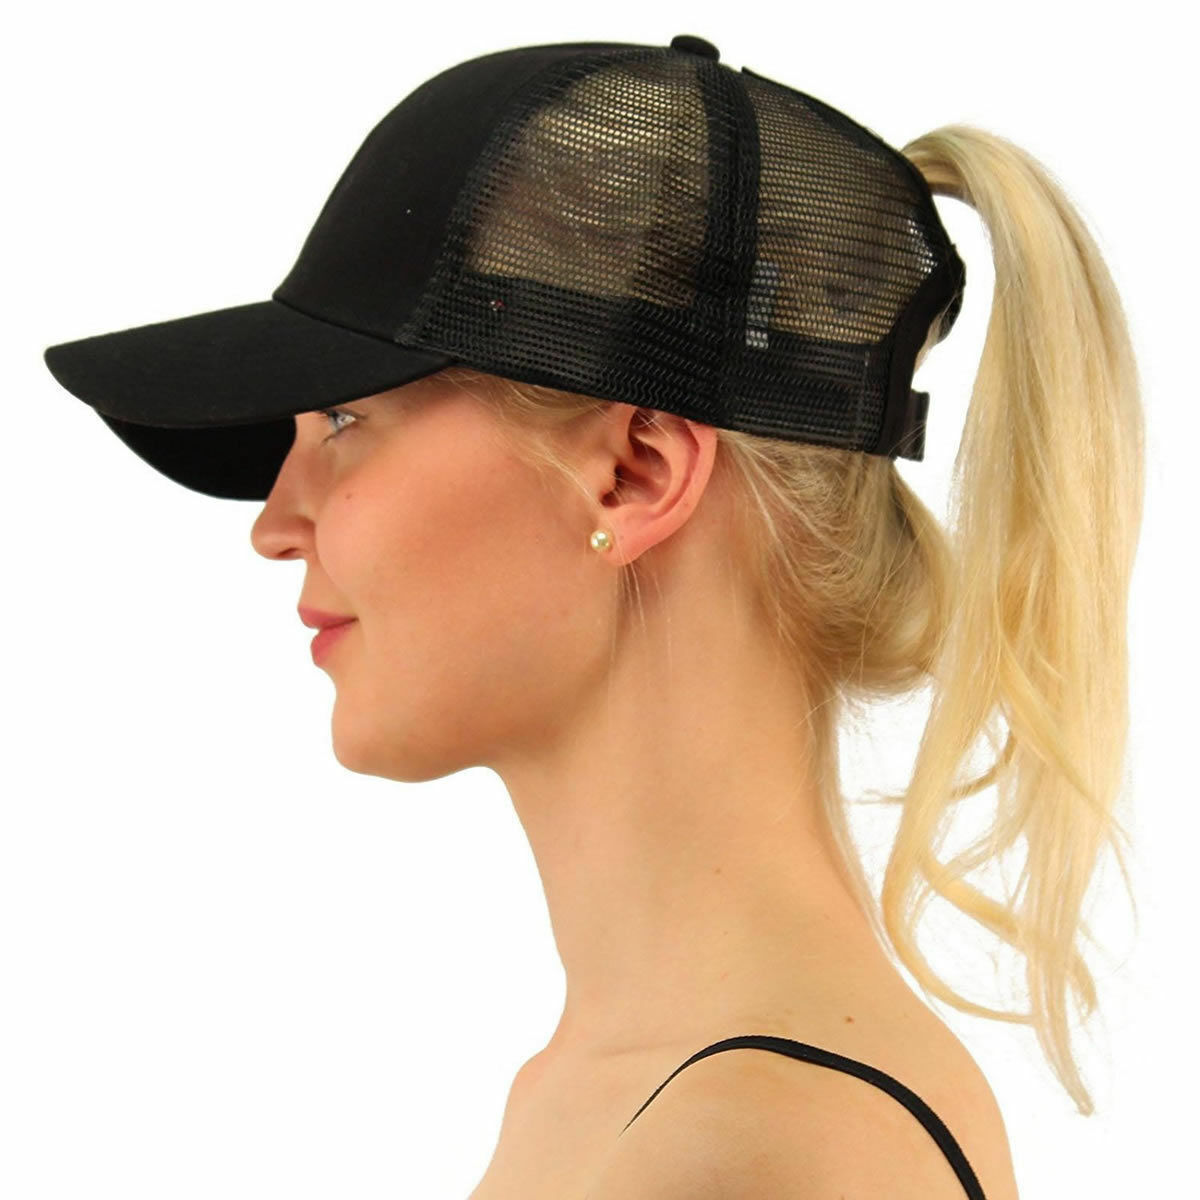 NEW Breathable Black High Bun Ponytail Adjustable Mesh Trucker Baseball Cap Hat Clothing, Shoes & Accessories